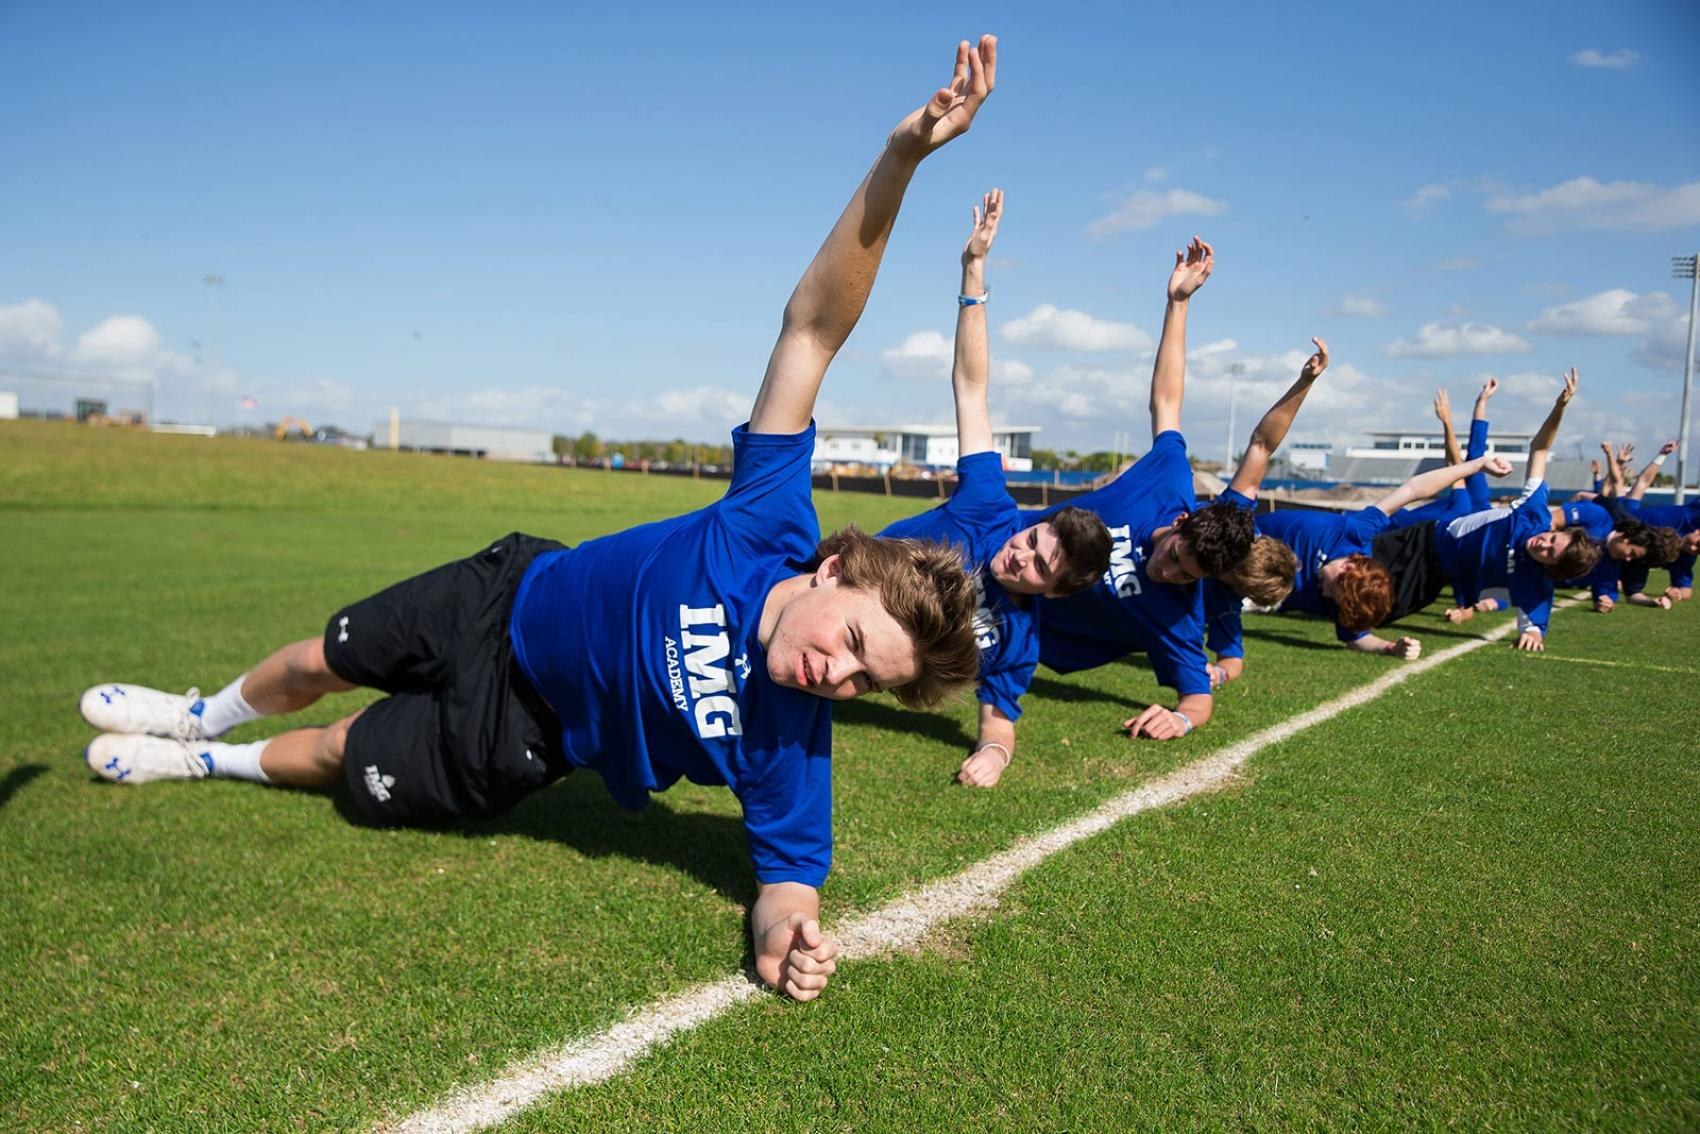 Sports Performance Camps - Speed Camps | IMG Academy 2019